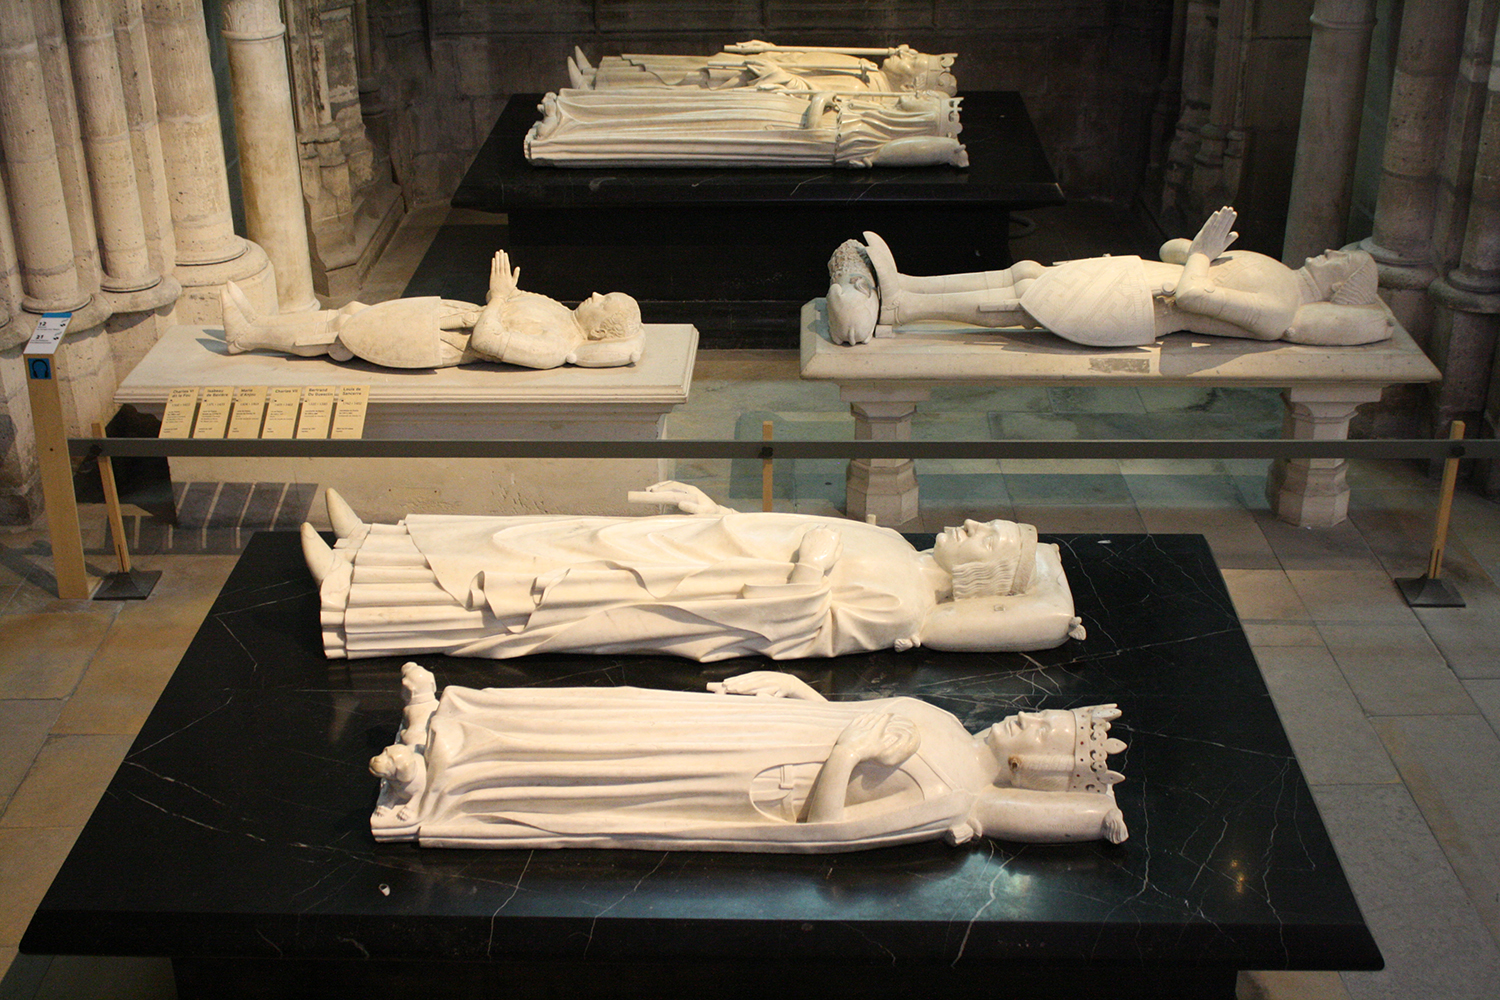 Figure 13: Abbey of Saint-Denis interior with graves of generations of kings. Photograph by Julia Perratore.